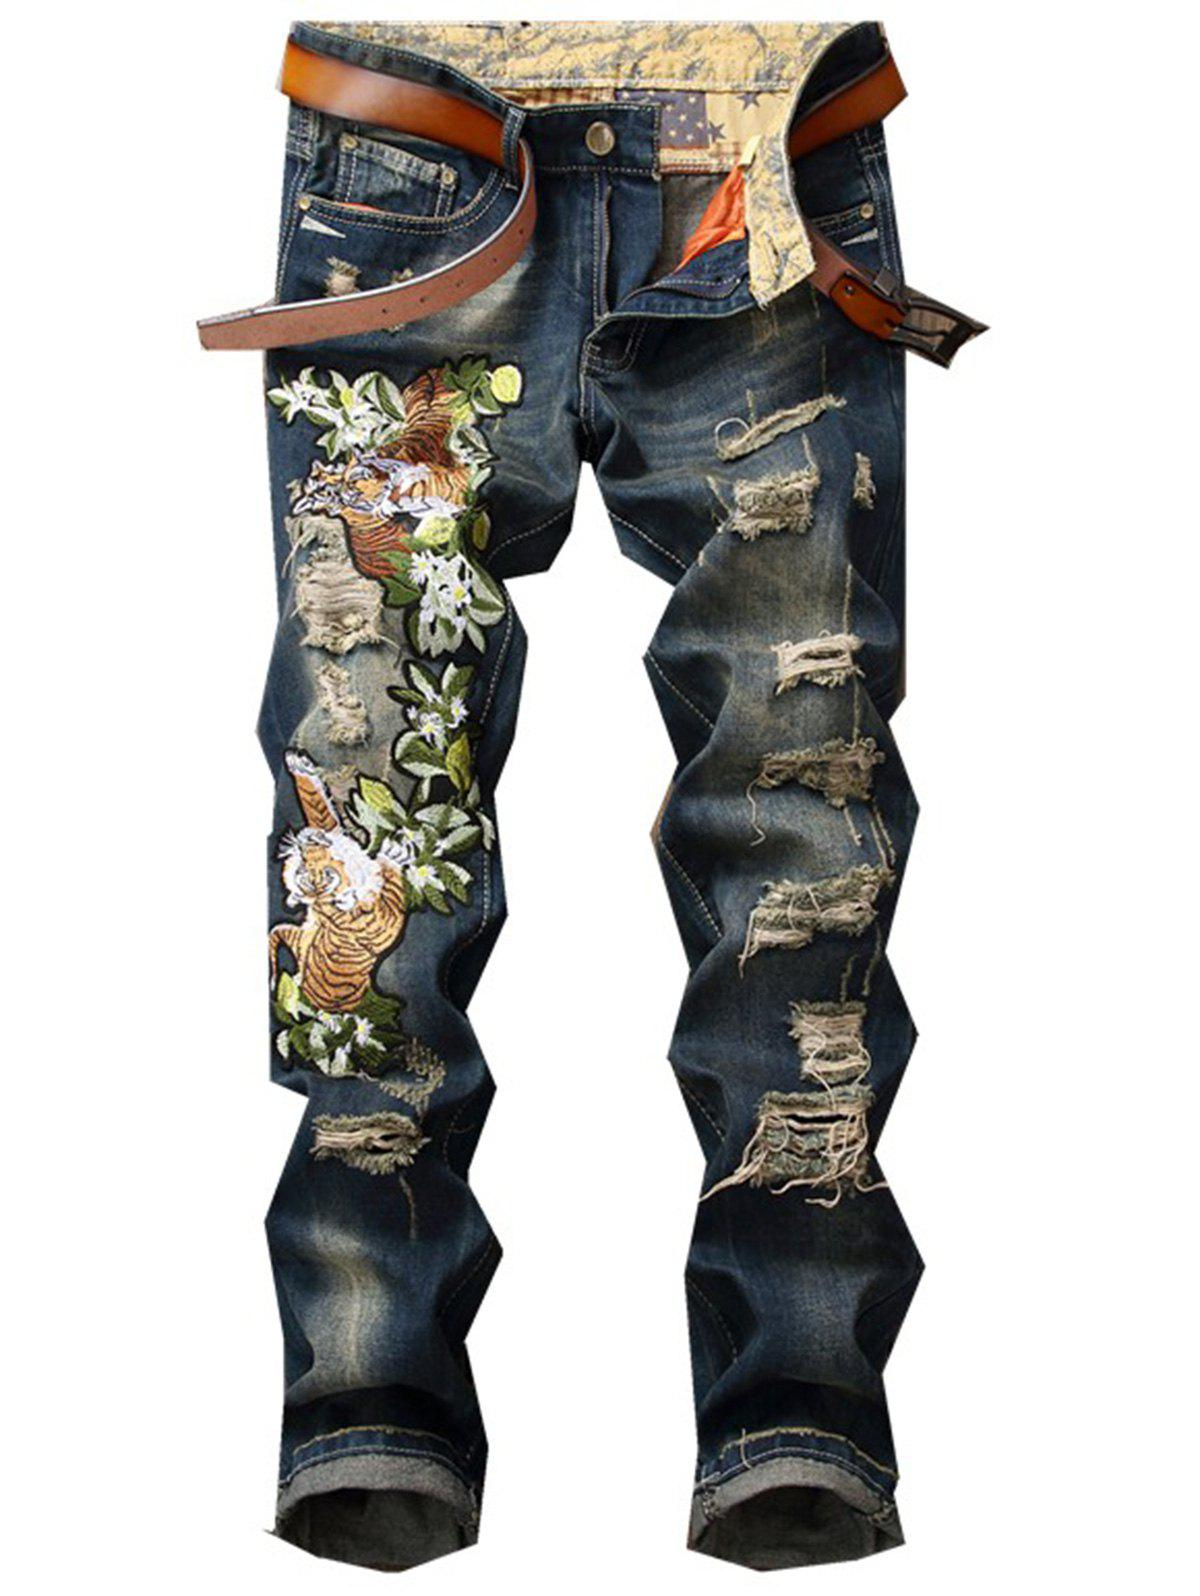 Tiger and Floral Embroidered Ripped JeansMEN<br><br>Size: 34; Color: DENIM BLUE; Material: Jean,Polyester; Pant Length: Long Pants; Wash: Destroy Wash; Fit Type: Regular; Closure Type: Zipper Fly; Weight: 0.7500kg; Pant Style: Straight; Package Contents: 1 x Jeans; With Belt: No;